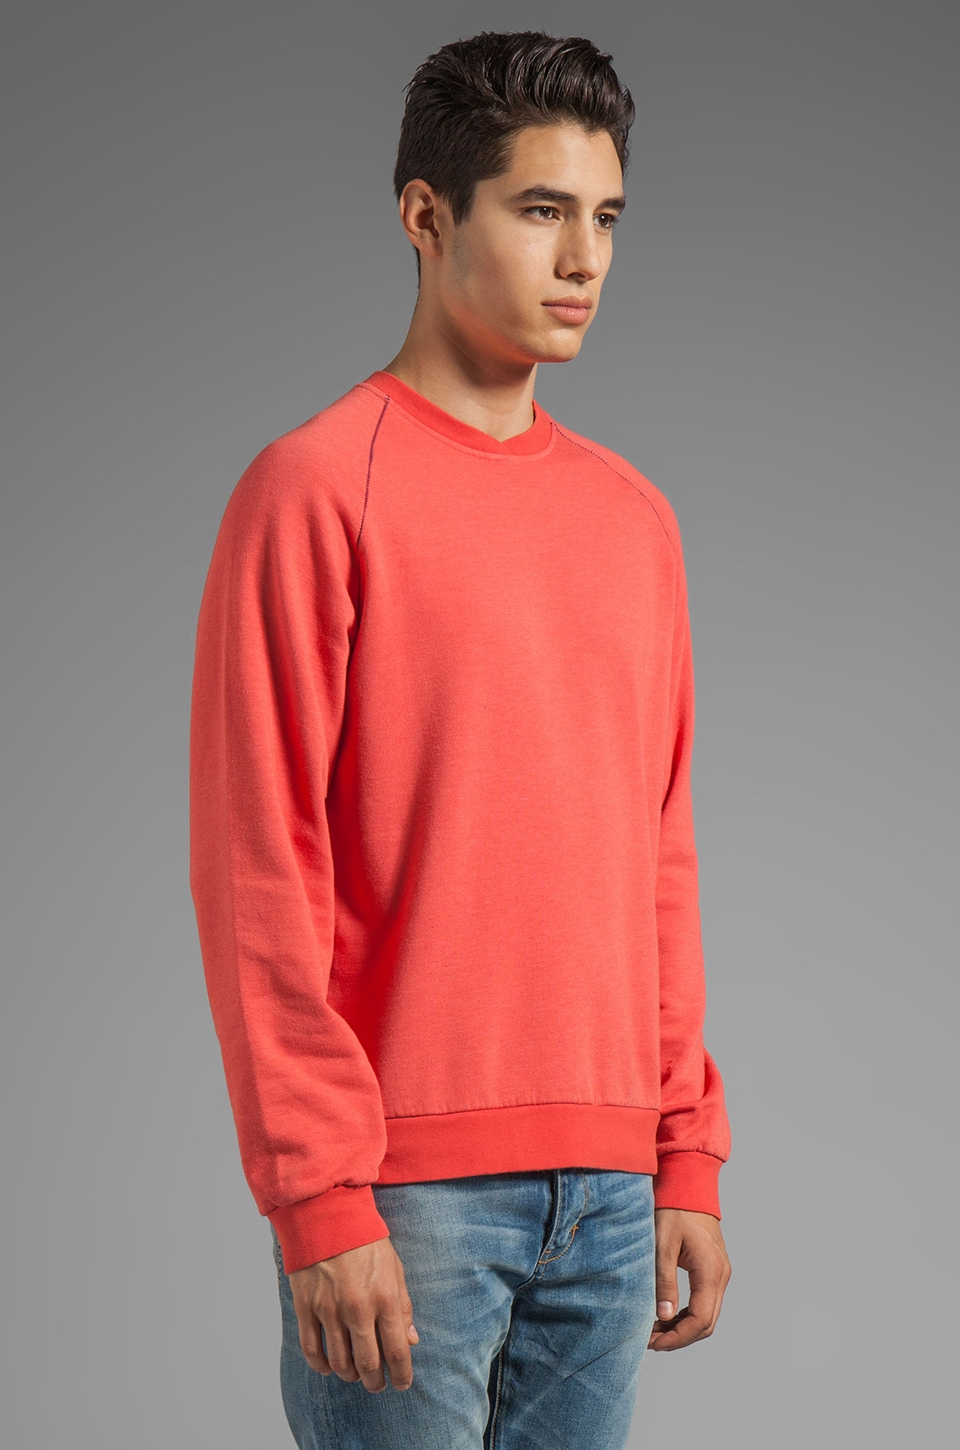 life/after/denim Paddle Boat Sweatshirt in Melon